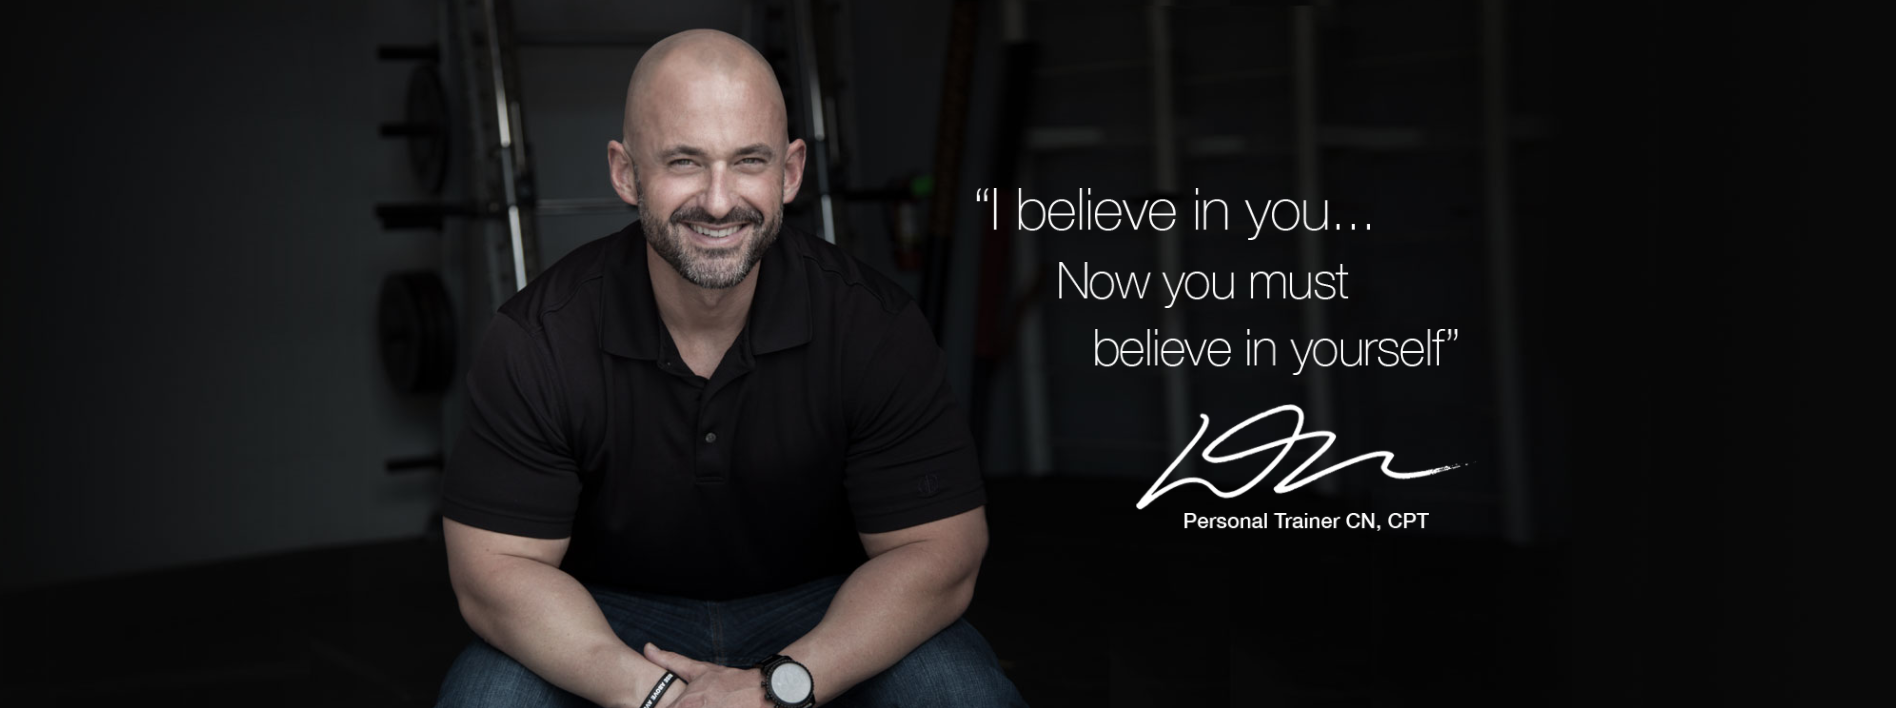 Dave Nelson personal branding statement